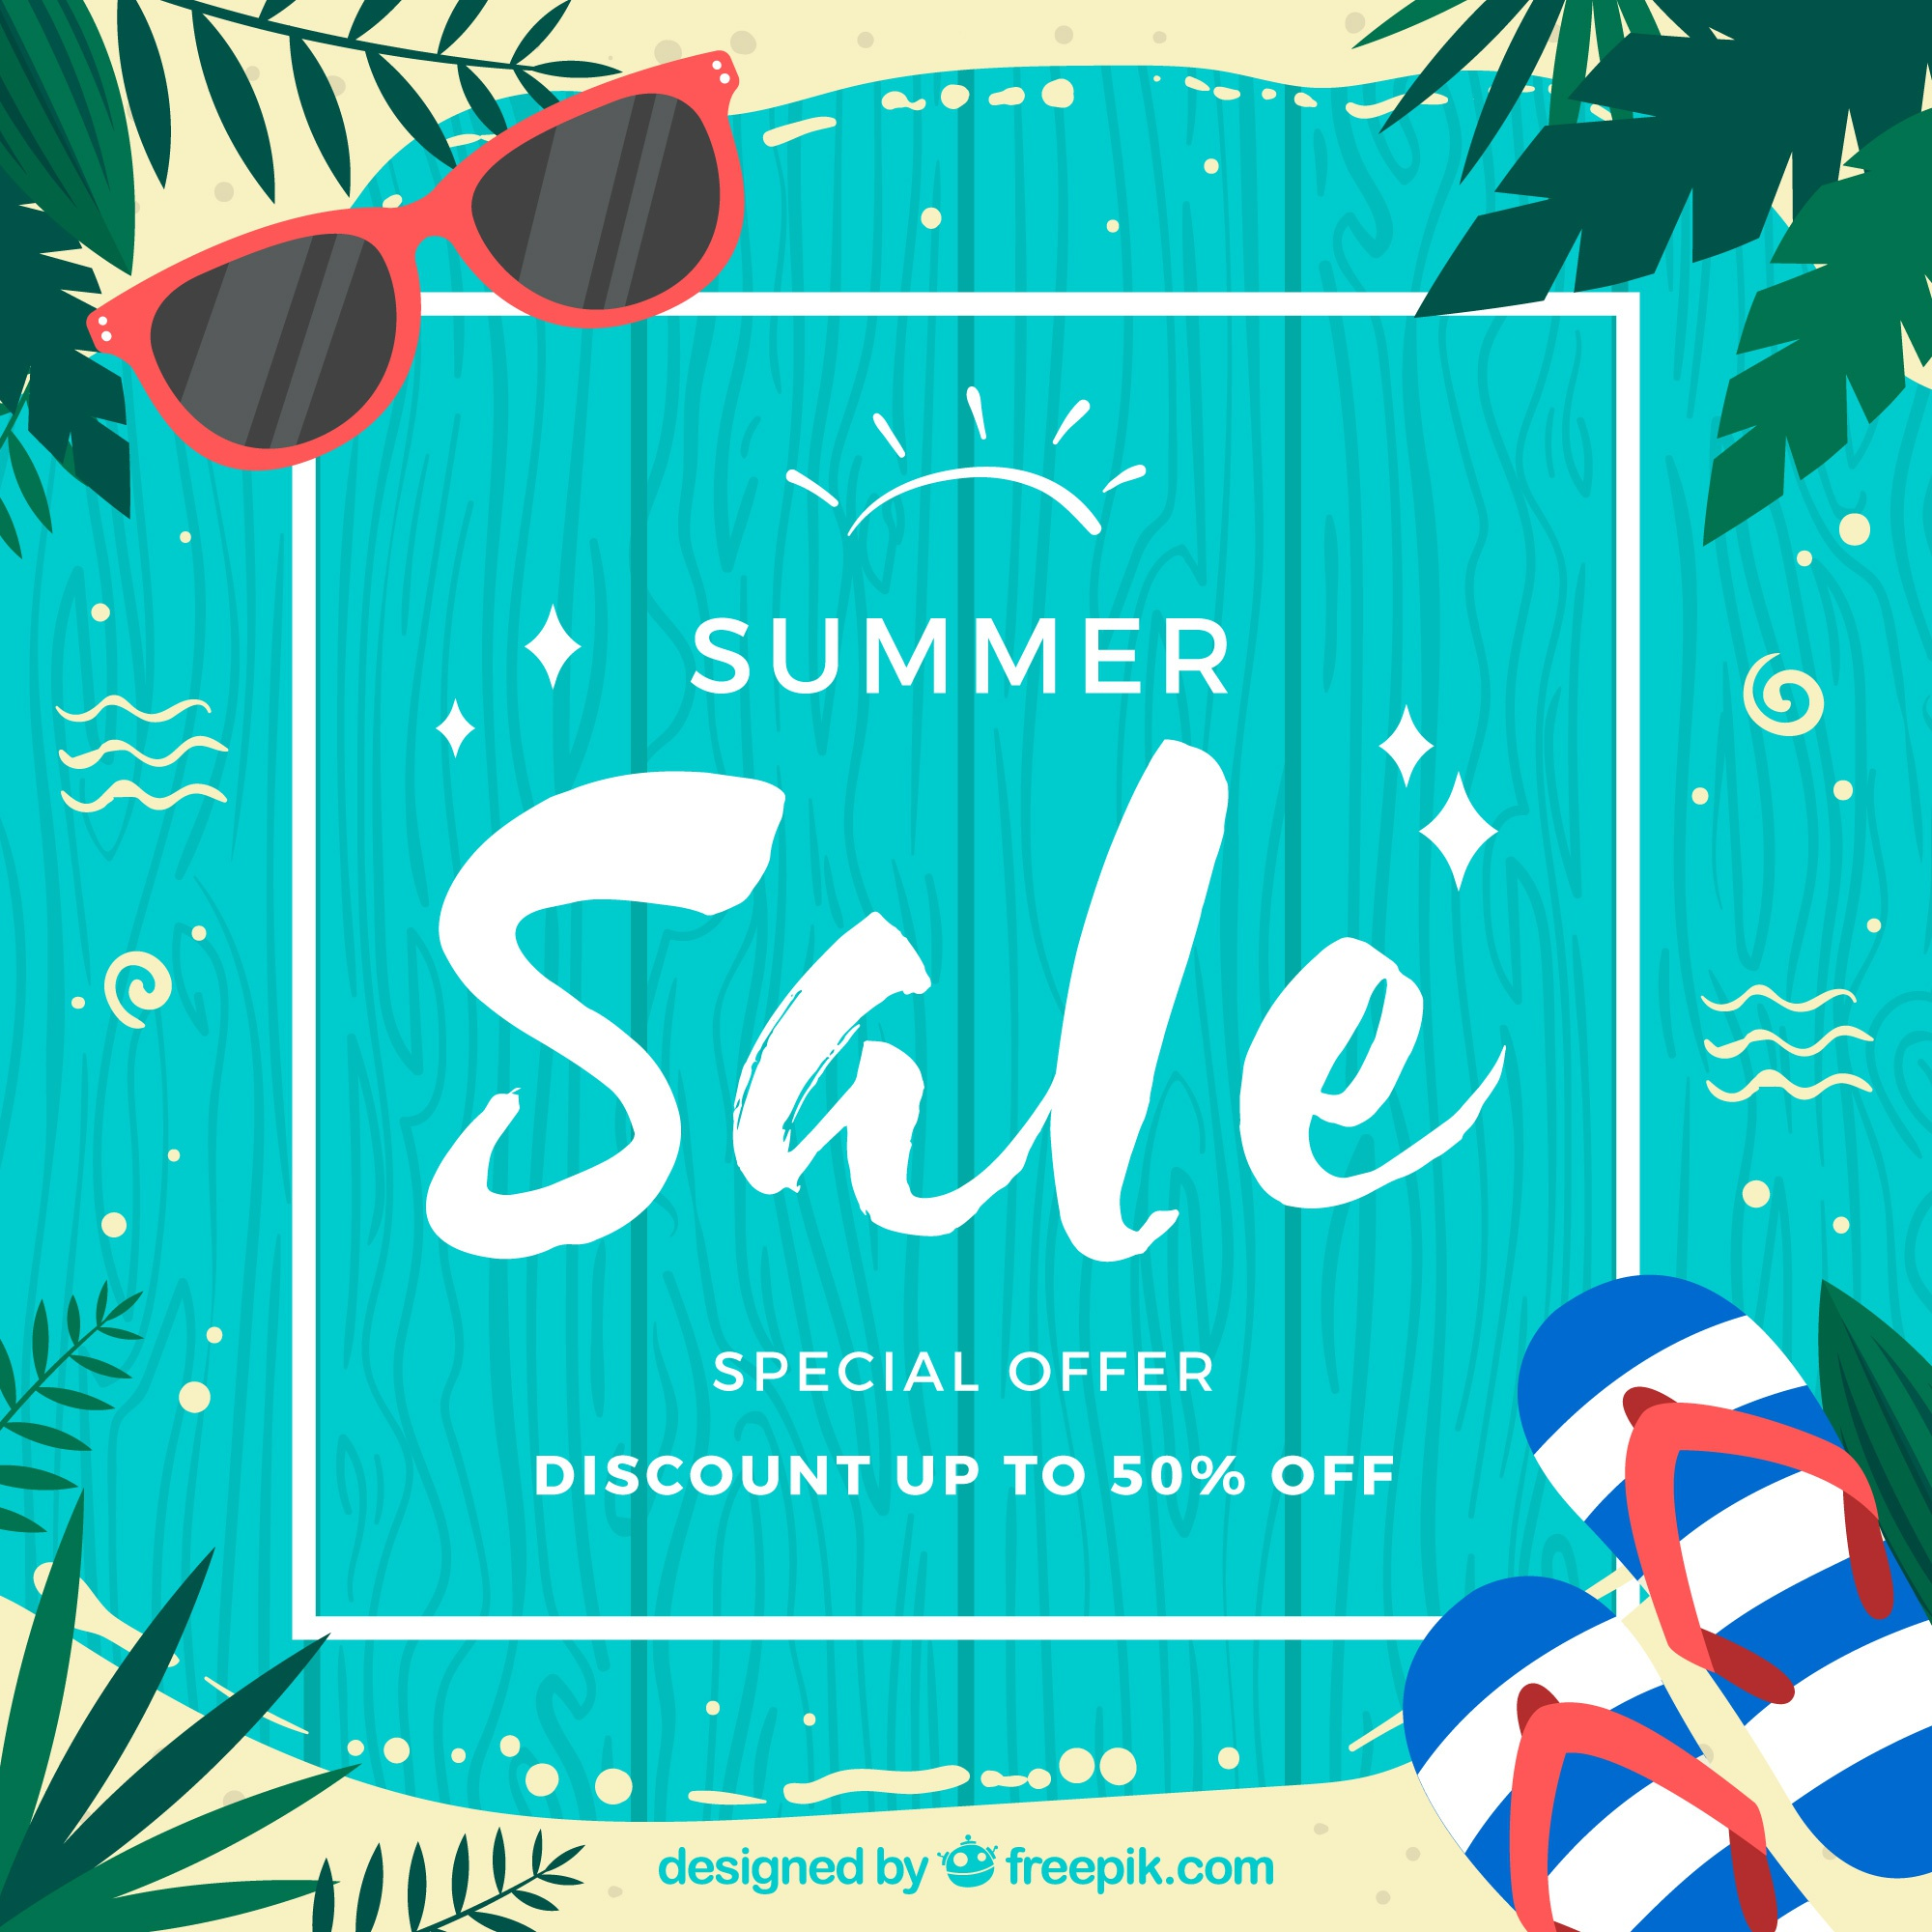 Summer sale background with wooden planks